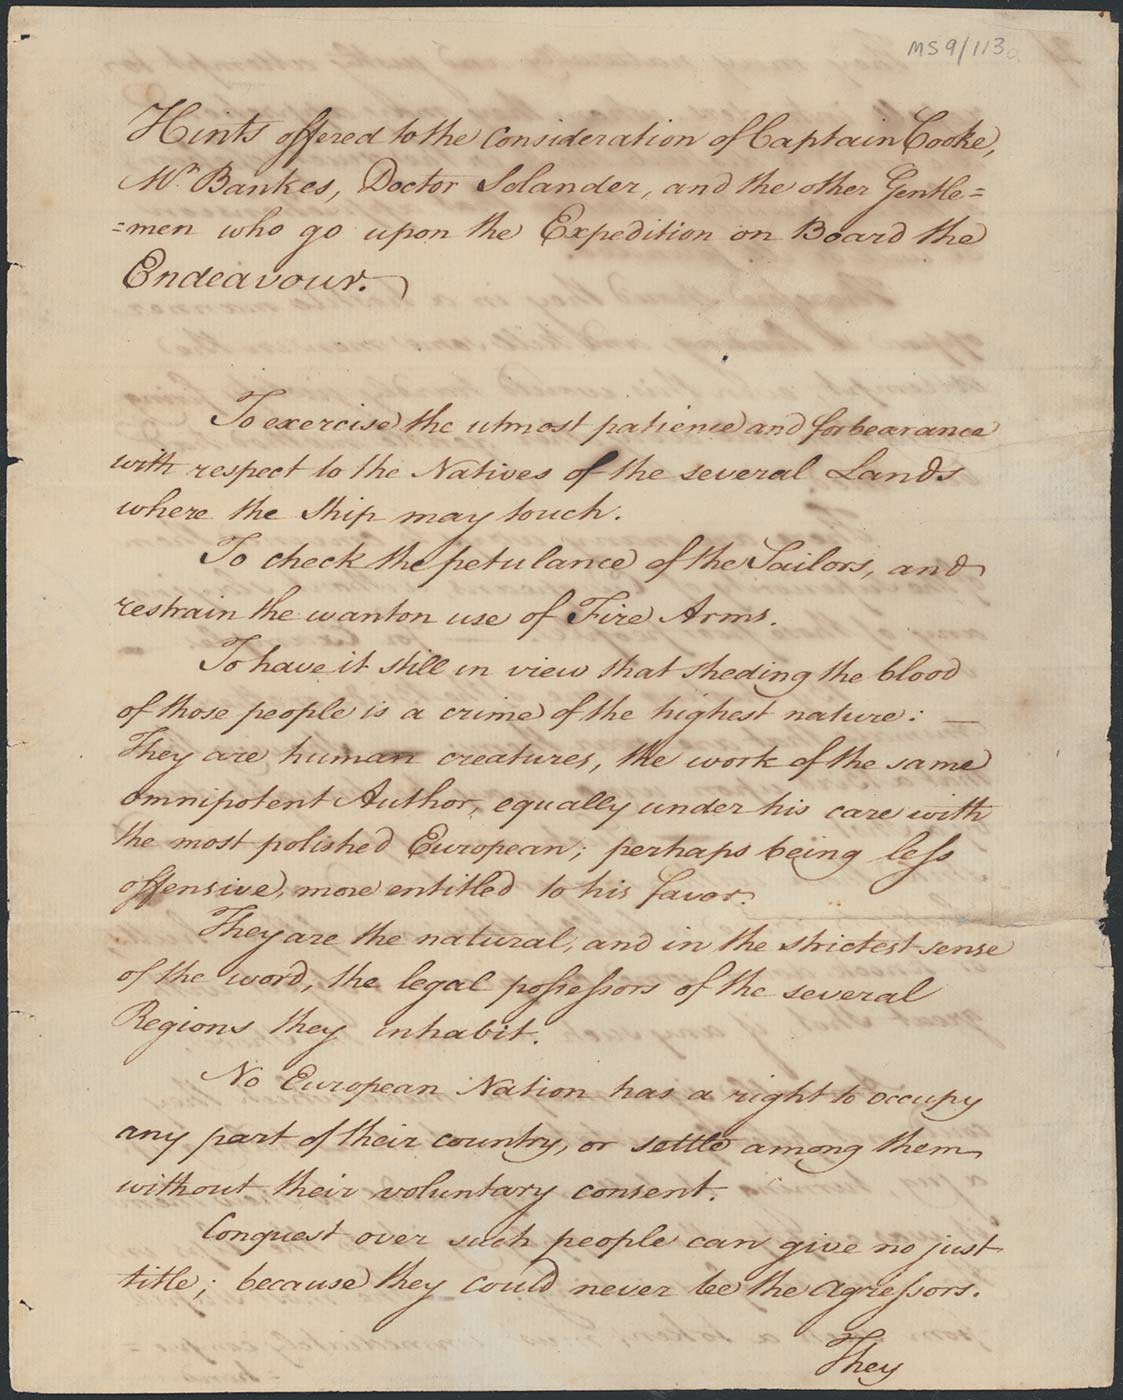 Handwritten document that reads: 'Hints offered to the consideration of Captain Cooke, Mr Bankes, Doctor Solander, and the other Gentlemen who go upon the Expedition on Board the Endeavour.  To exercise the utmost patience and forbearance with respect to the Natives of the several Lands where the Ship may touch.  To check the petulance of the Sailors, and restrain the wanton use of Fire Arms.  To have it still in view that sheding the blood of those people is a crime of the highest nature: —  They are human creatures, the work of the same omnipotent Author, equally under his care with the most polished European; perhaps being less offensive, more entitled to his favor.  They are the natural, and in the strictest sense of the word, the legal possessors of the several Regions they inhabit.  No European Nation has a right to occupy any part of their country, or settle among them without their voluntary consent.  Conquest over such people can give no just title; because they could never be the agressors. They ...'